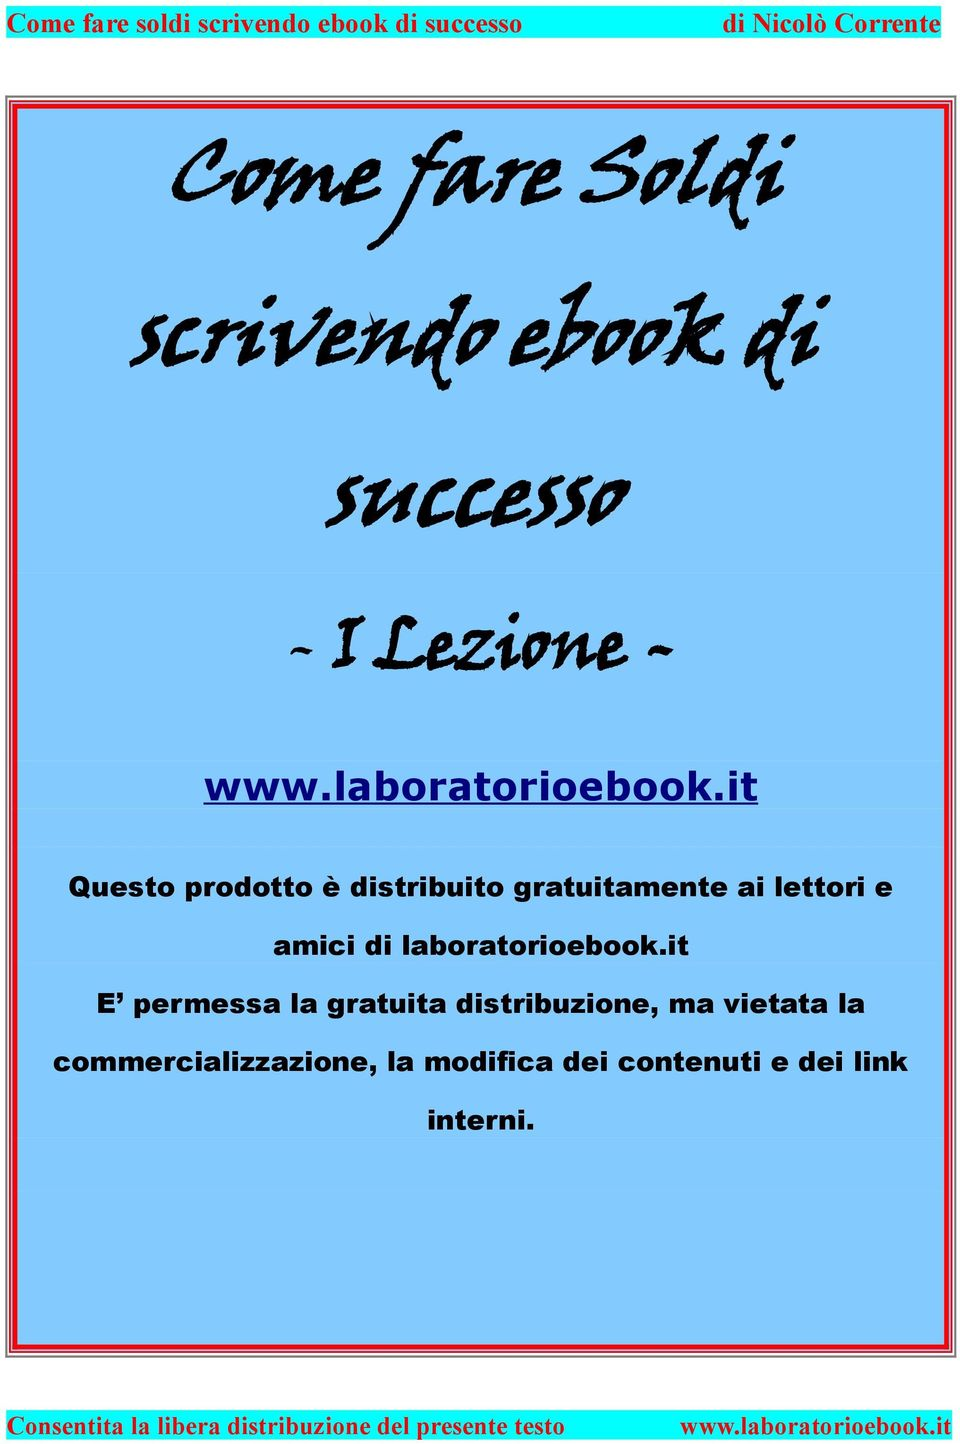 laboratorioebook.